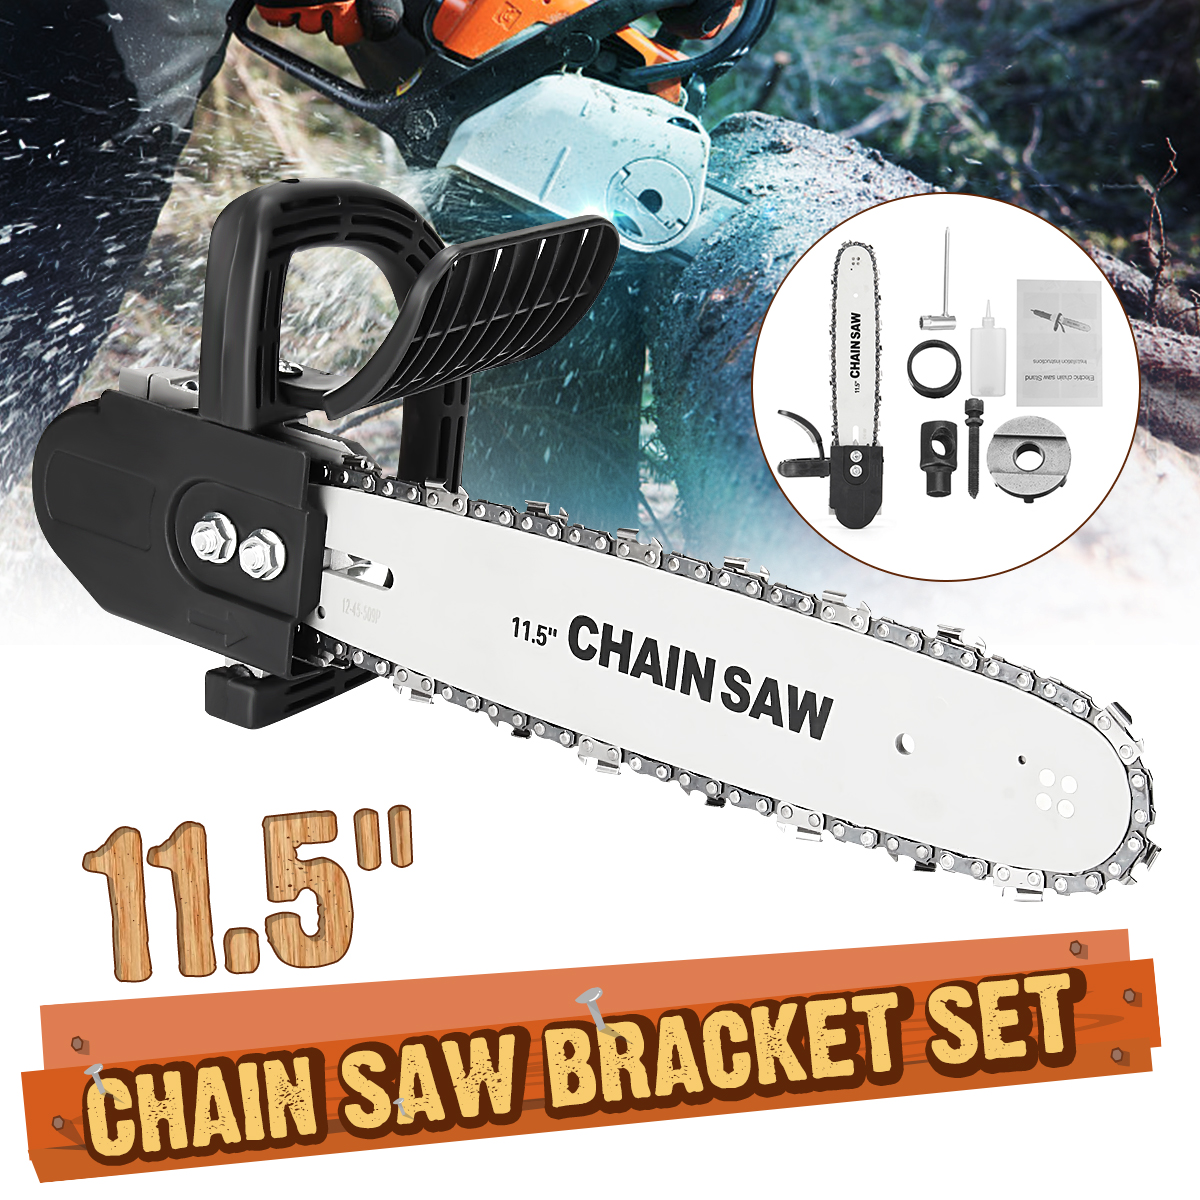 Drillpro 11.5 Inch Chainsaw Bracket Set High Carbon Steel For M10 Angle Grinder To Chain Saw Woodworking Power Tools electric saws 11 5 inch chainsaw bracket set high carbon steel for electric angle grinder to chain saw woodworking power tools